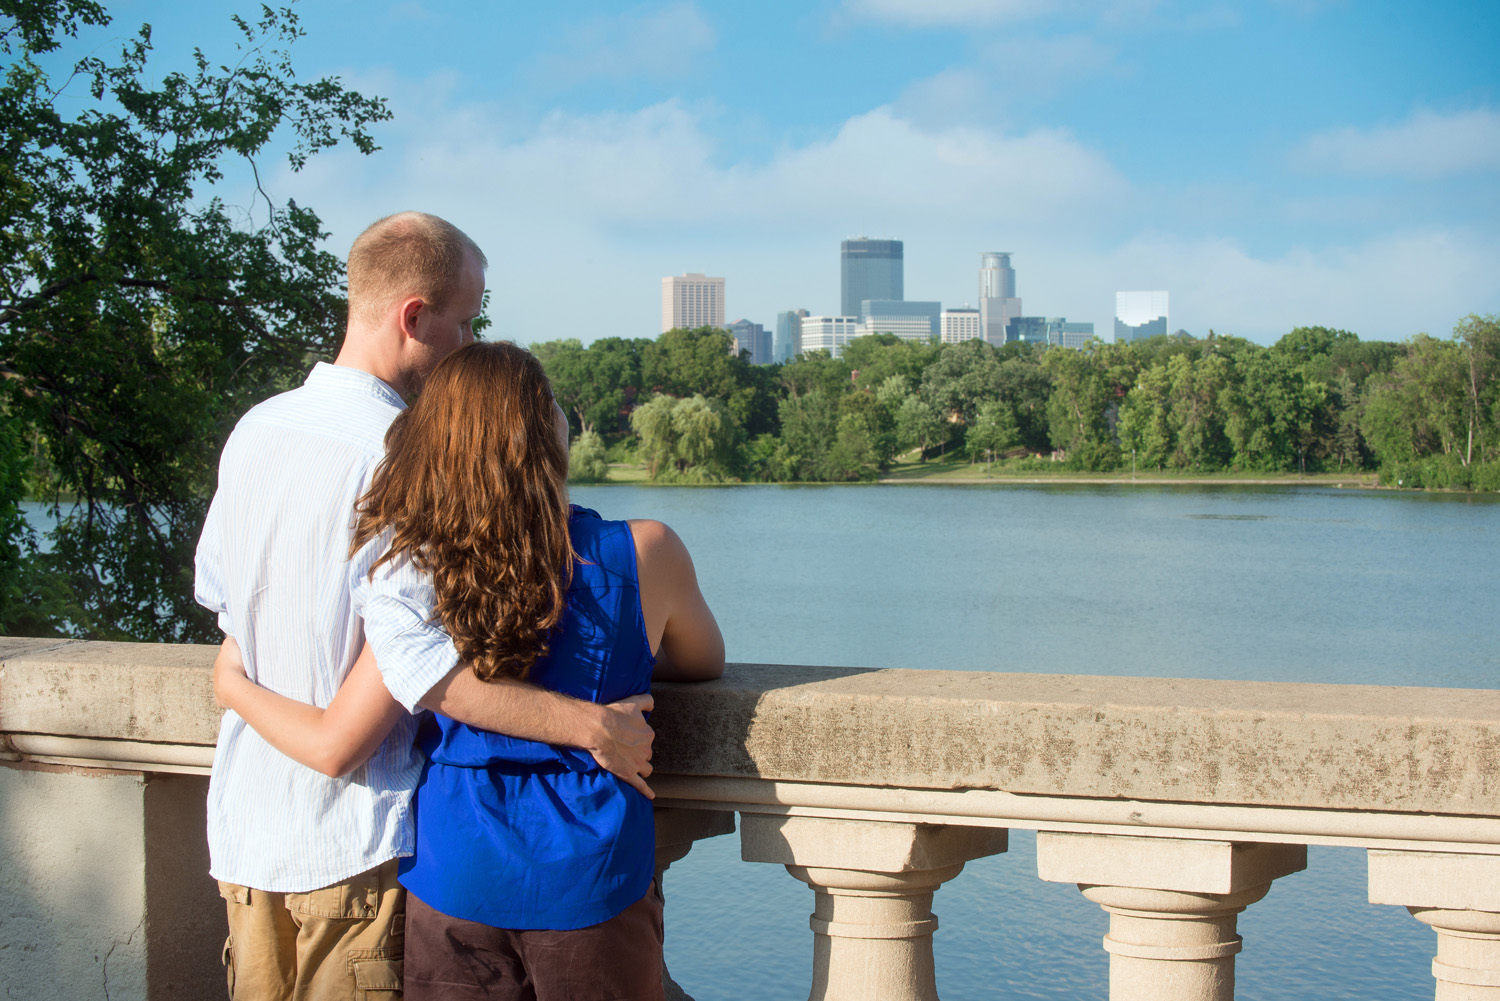 A Twin Cities couple takes in the view of the Minneapolis skyline from the Kenwood Neighborhood.